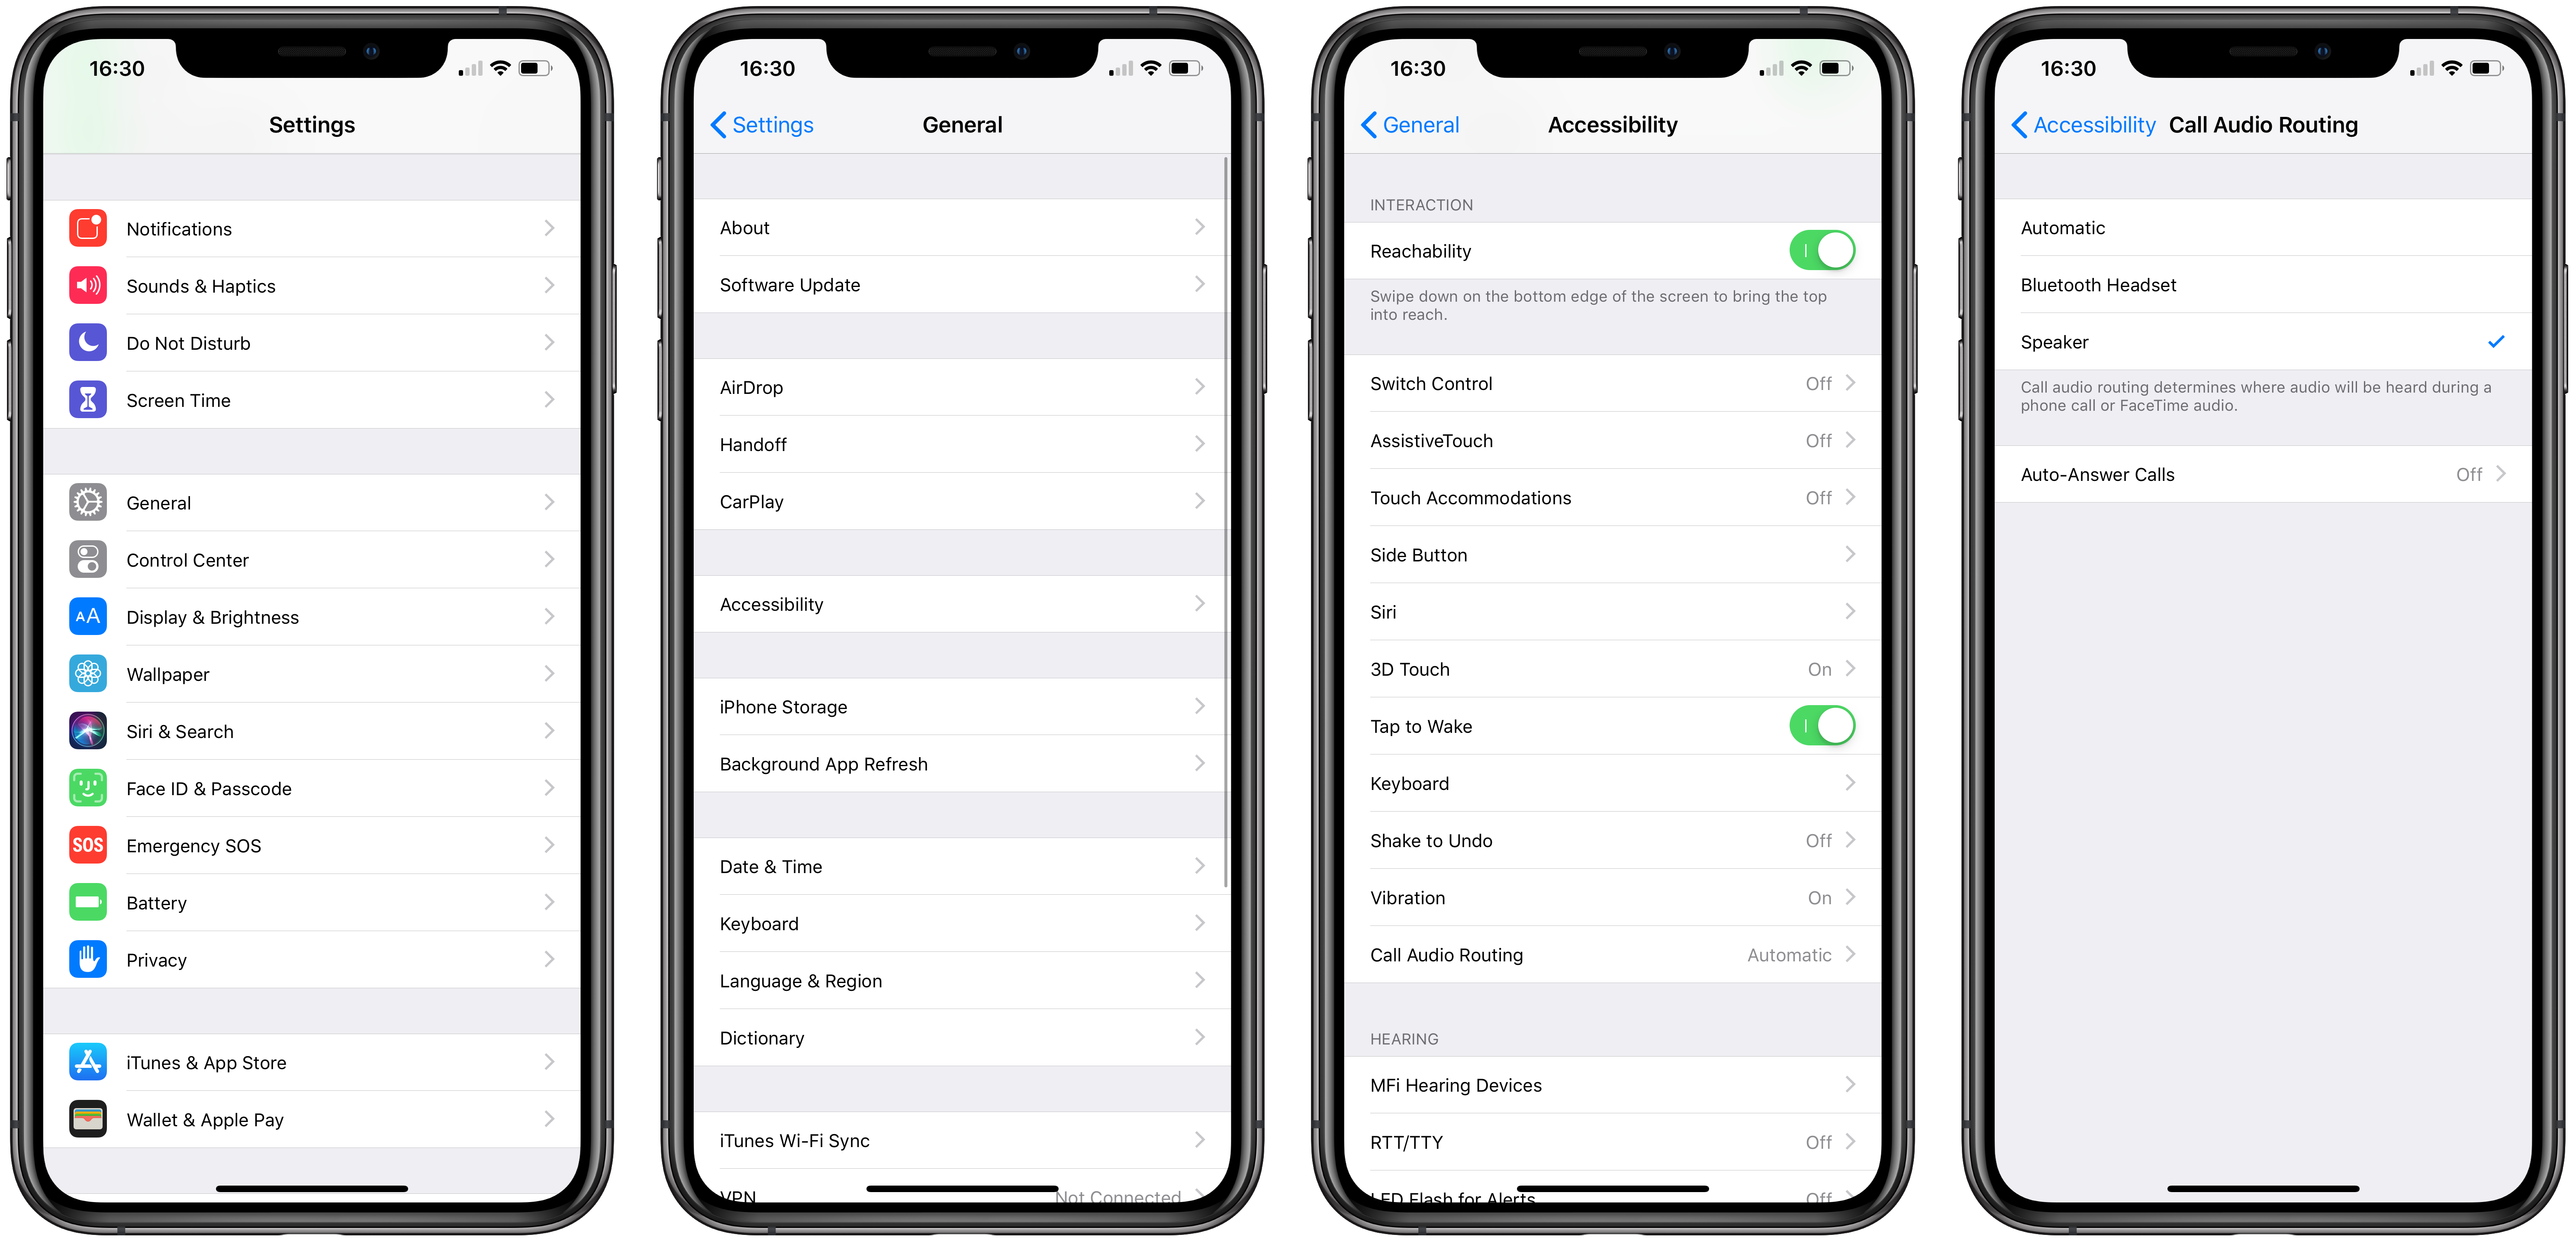 How to automatically speakerphone on iPhone when taking a call